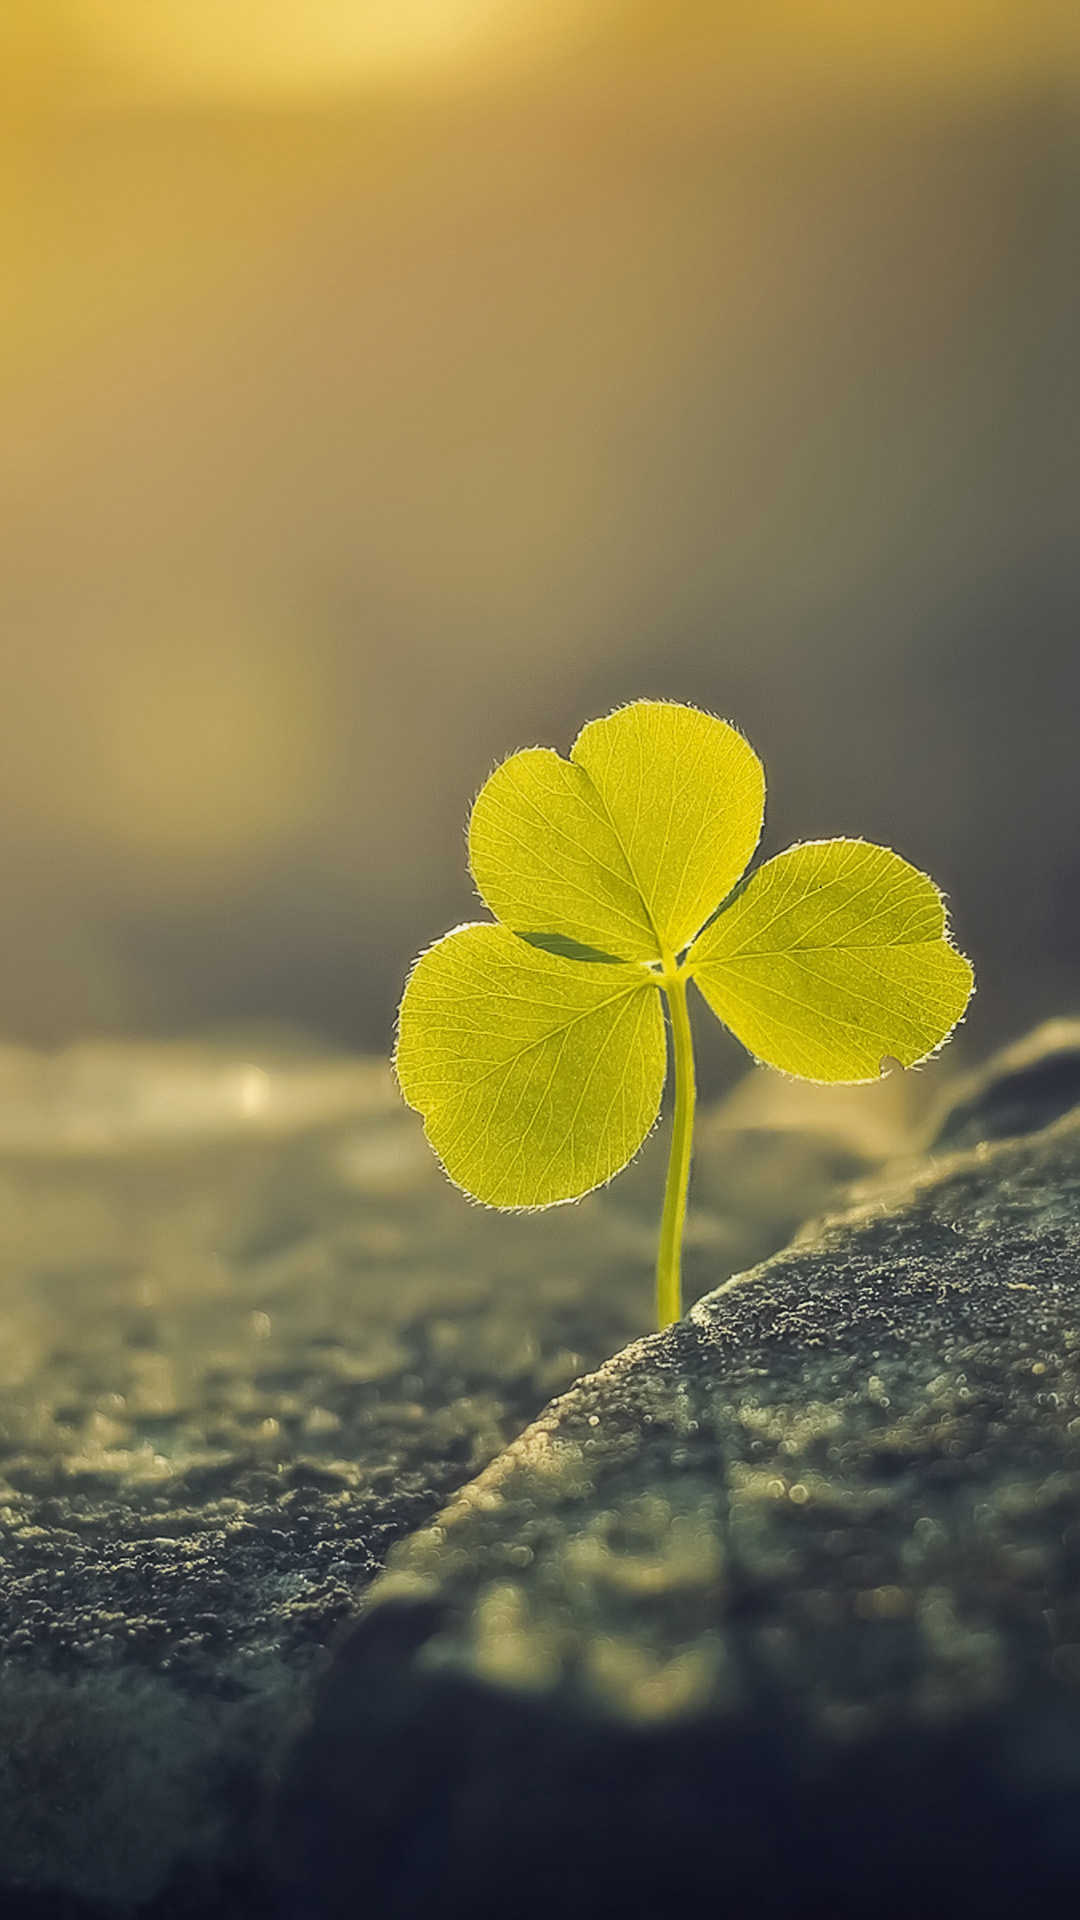 Three Leaf Clover Sunlight Macro Android Wallpaper download 1080x1920